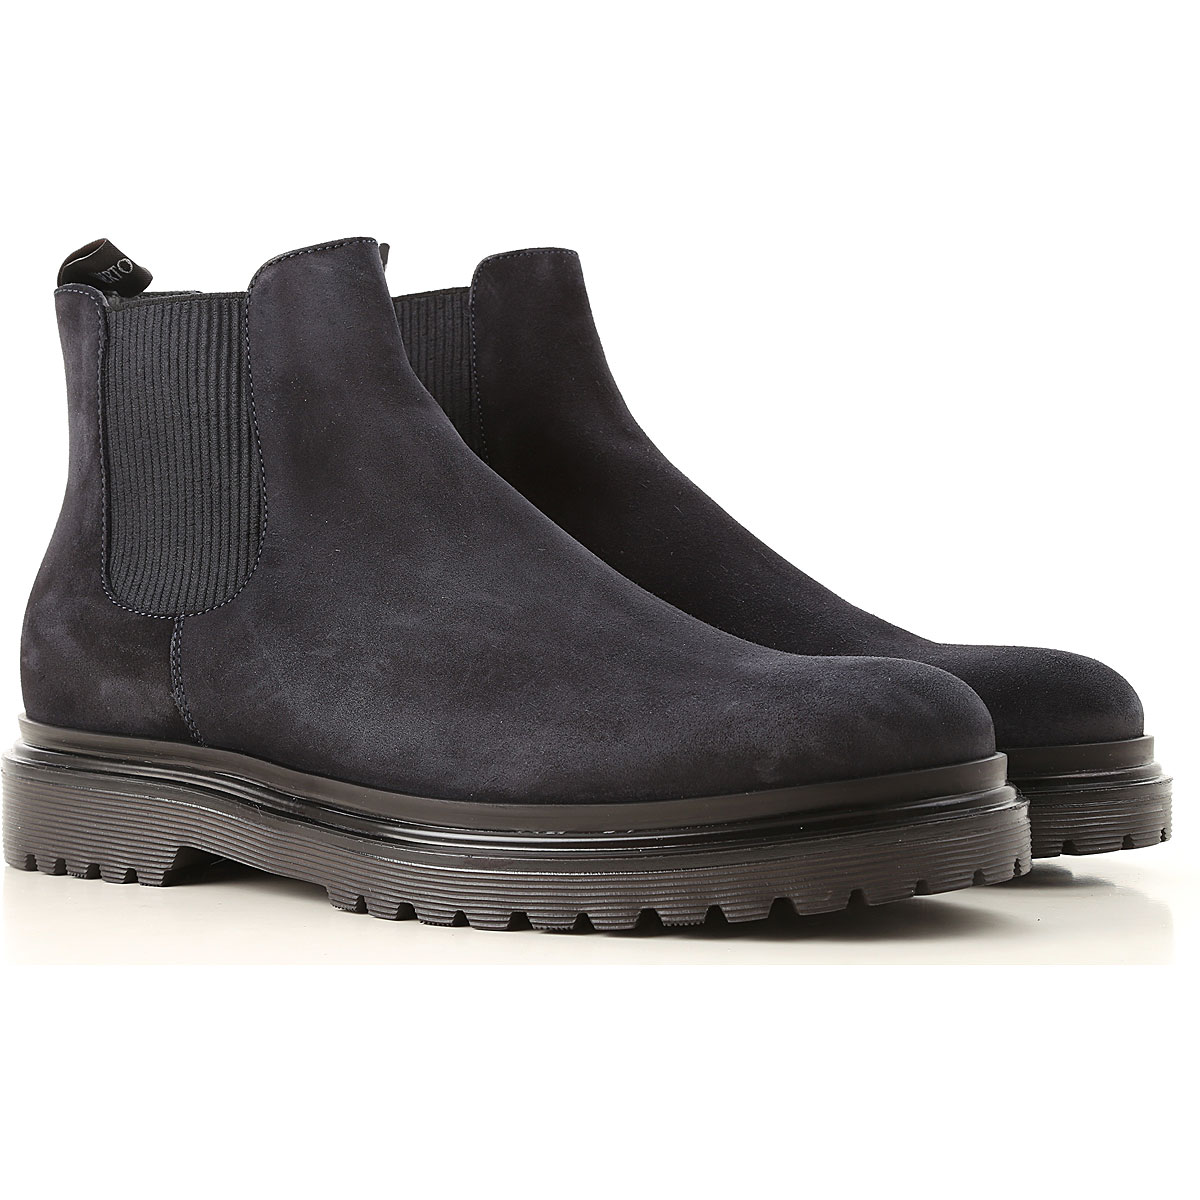 Image of Alberto Guardiani Boots for Men, Booties, Dark Midnight Blue, Suede leather, 2017, 10 10.5 11.5 7.5 8 9